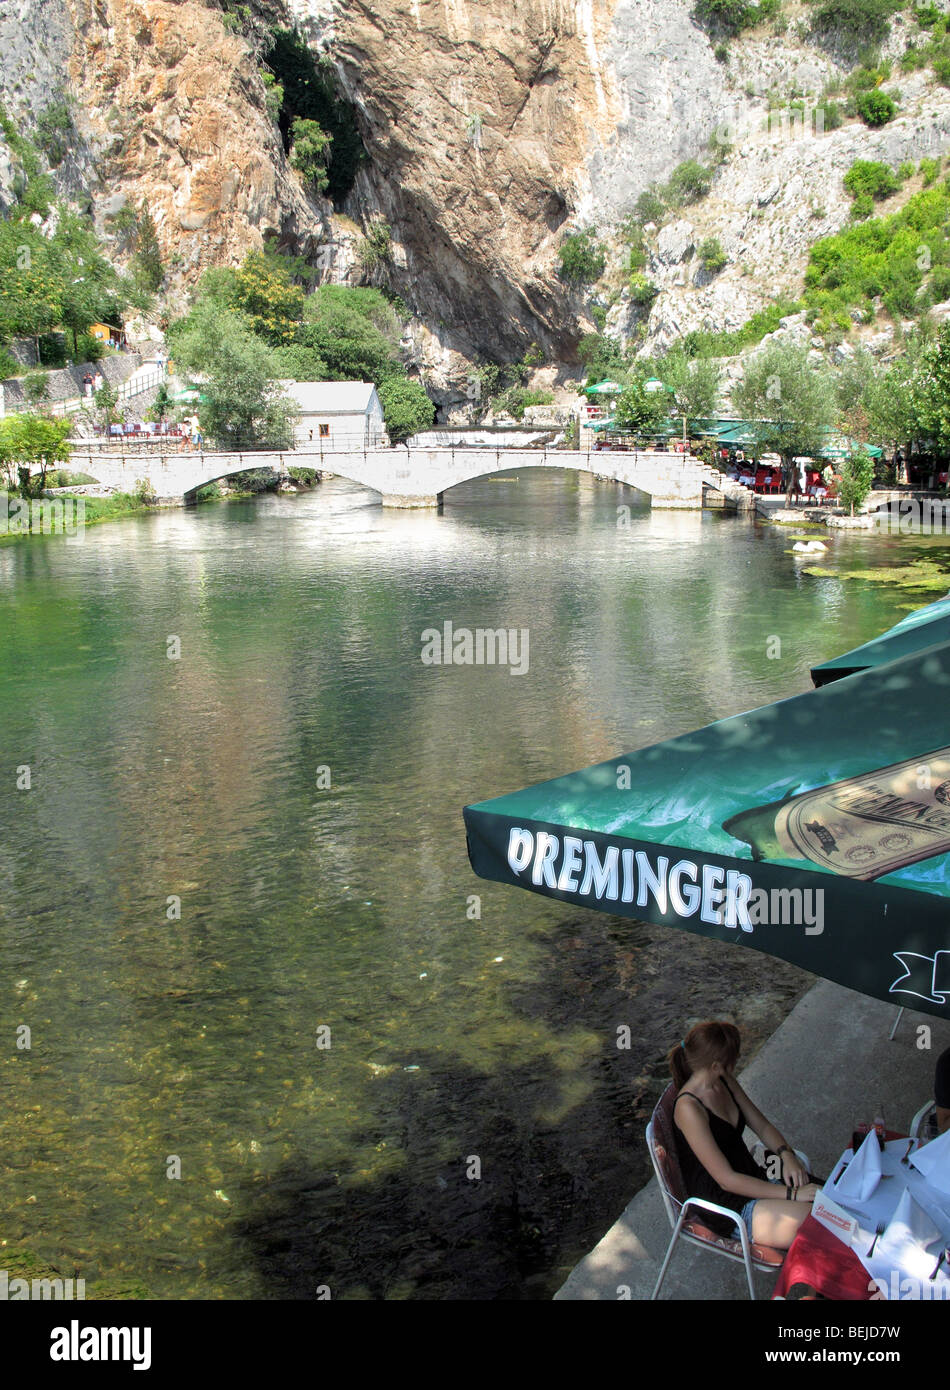 Bosnia and Herzegovina, Blagaj, outing spot with Open air restauranst on the banks of Buna rive - Stock Image